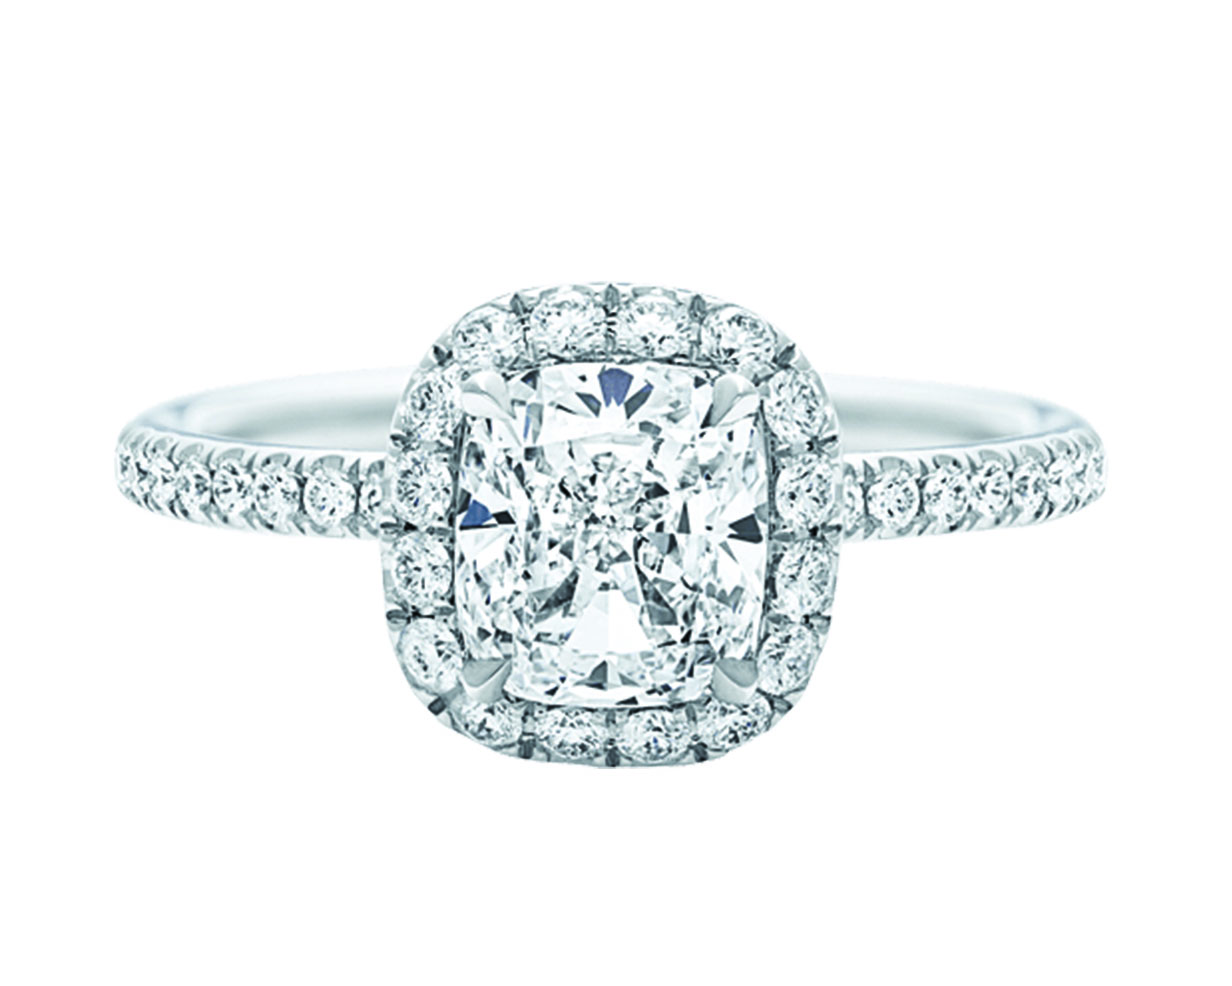 Cushion cut diamond center stone ring with paved halo and platinum pave band